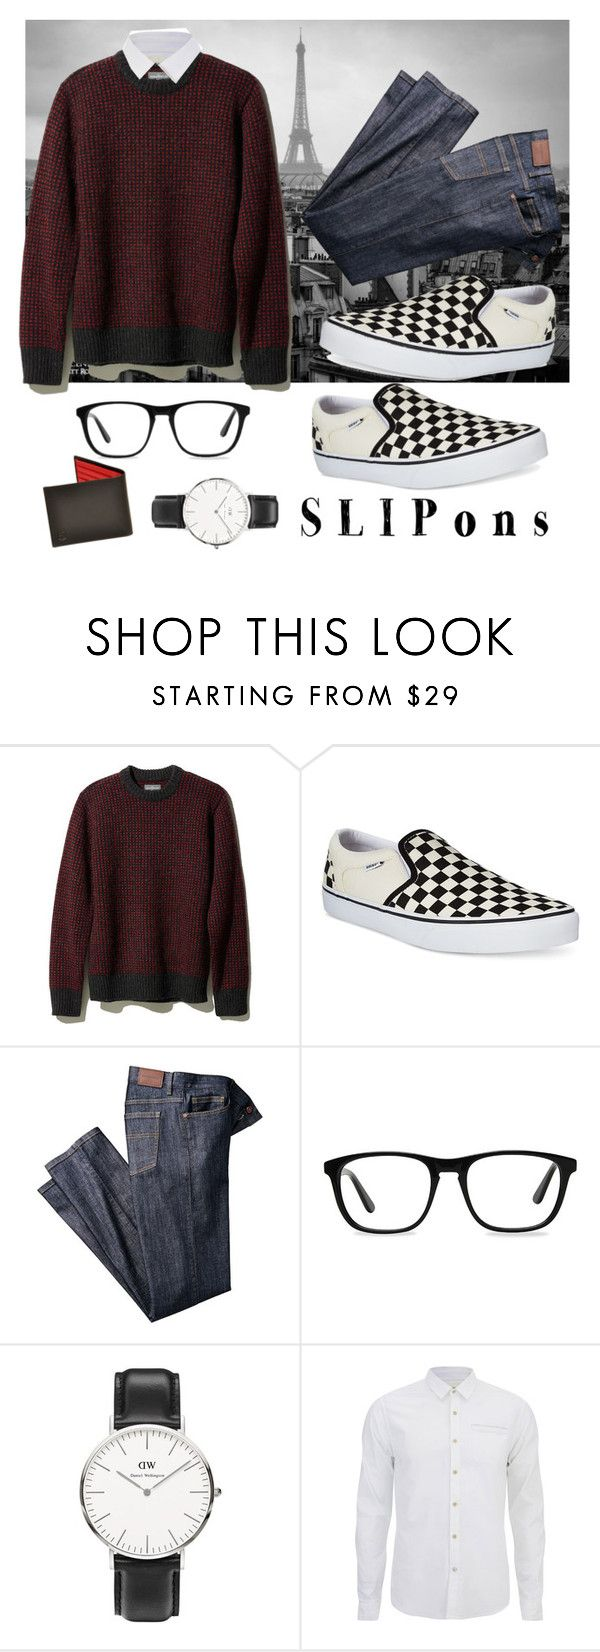 """Checkered Slip-ons"" by galaxyrewind ❤ liked on Polyvore featuring L.L.Bean, Vans, Ace, Daniel Wellington, Scotch & Soda, men's fashion, menswear and slipons"